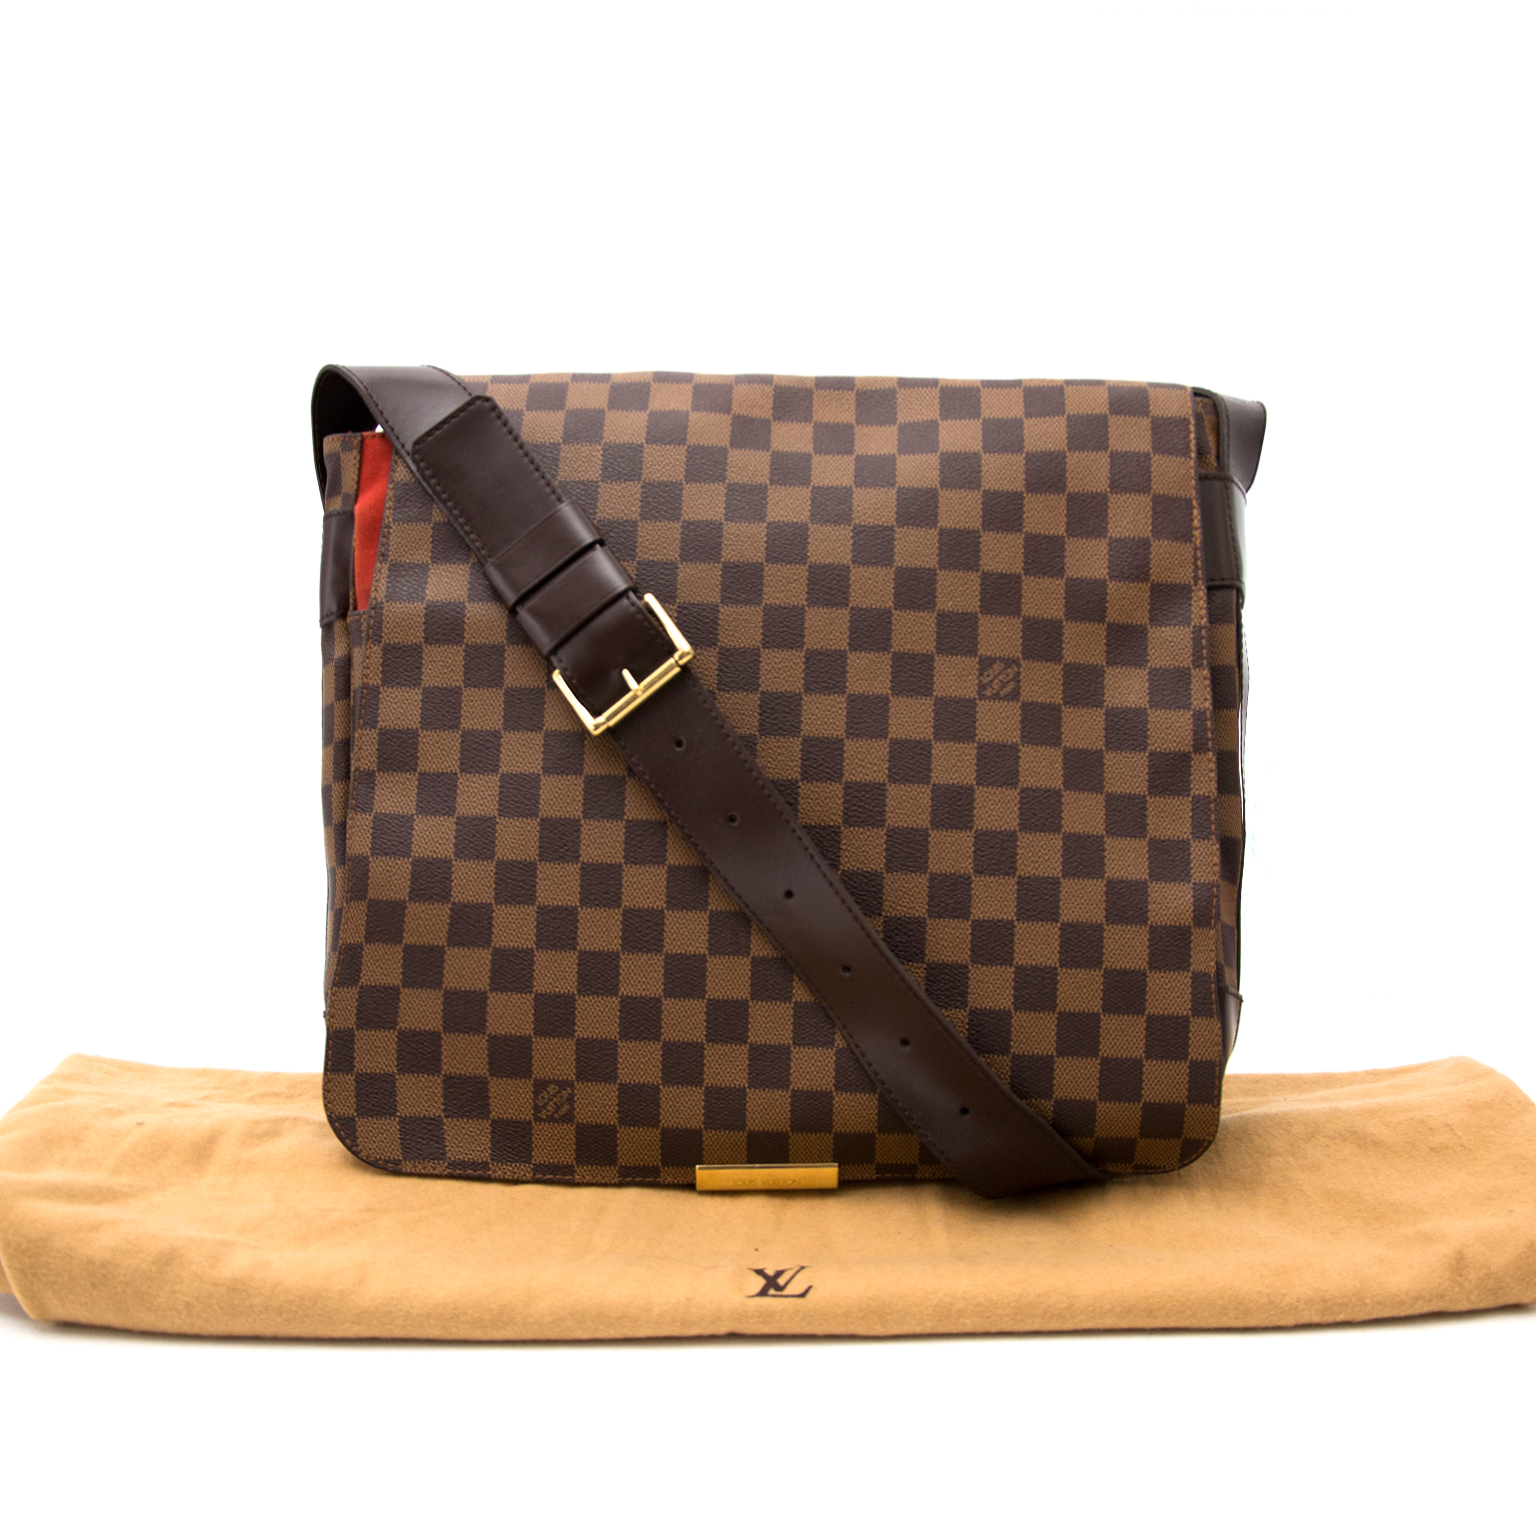 Buy now authentic Louis Vuitton Bags at labellov Belgium in Antwerp at the best price in 2017.